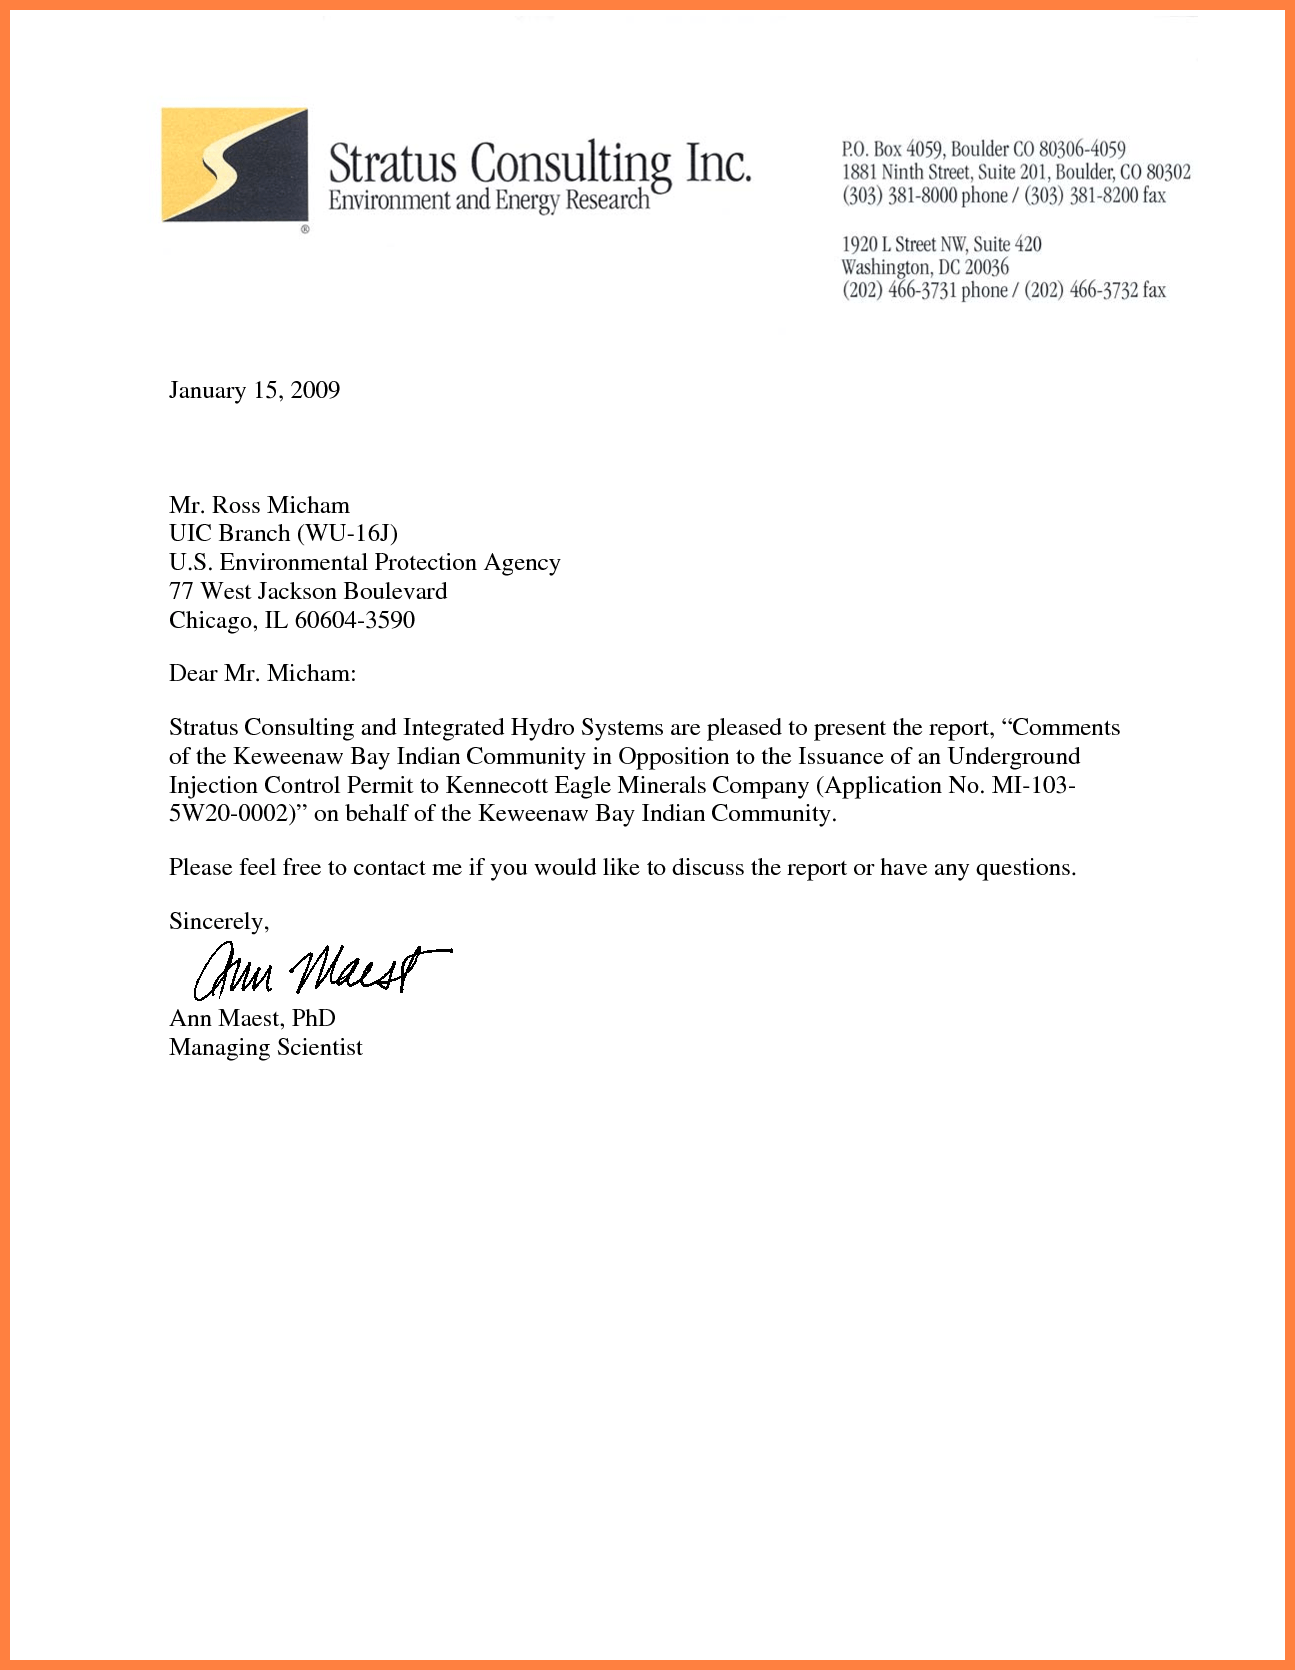 Personal Letter Format With Letterhead pacificstation.co